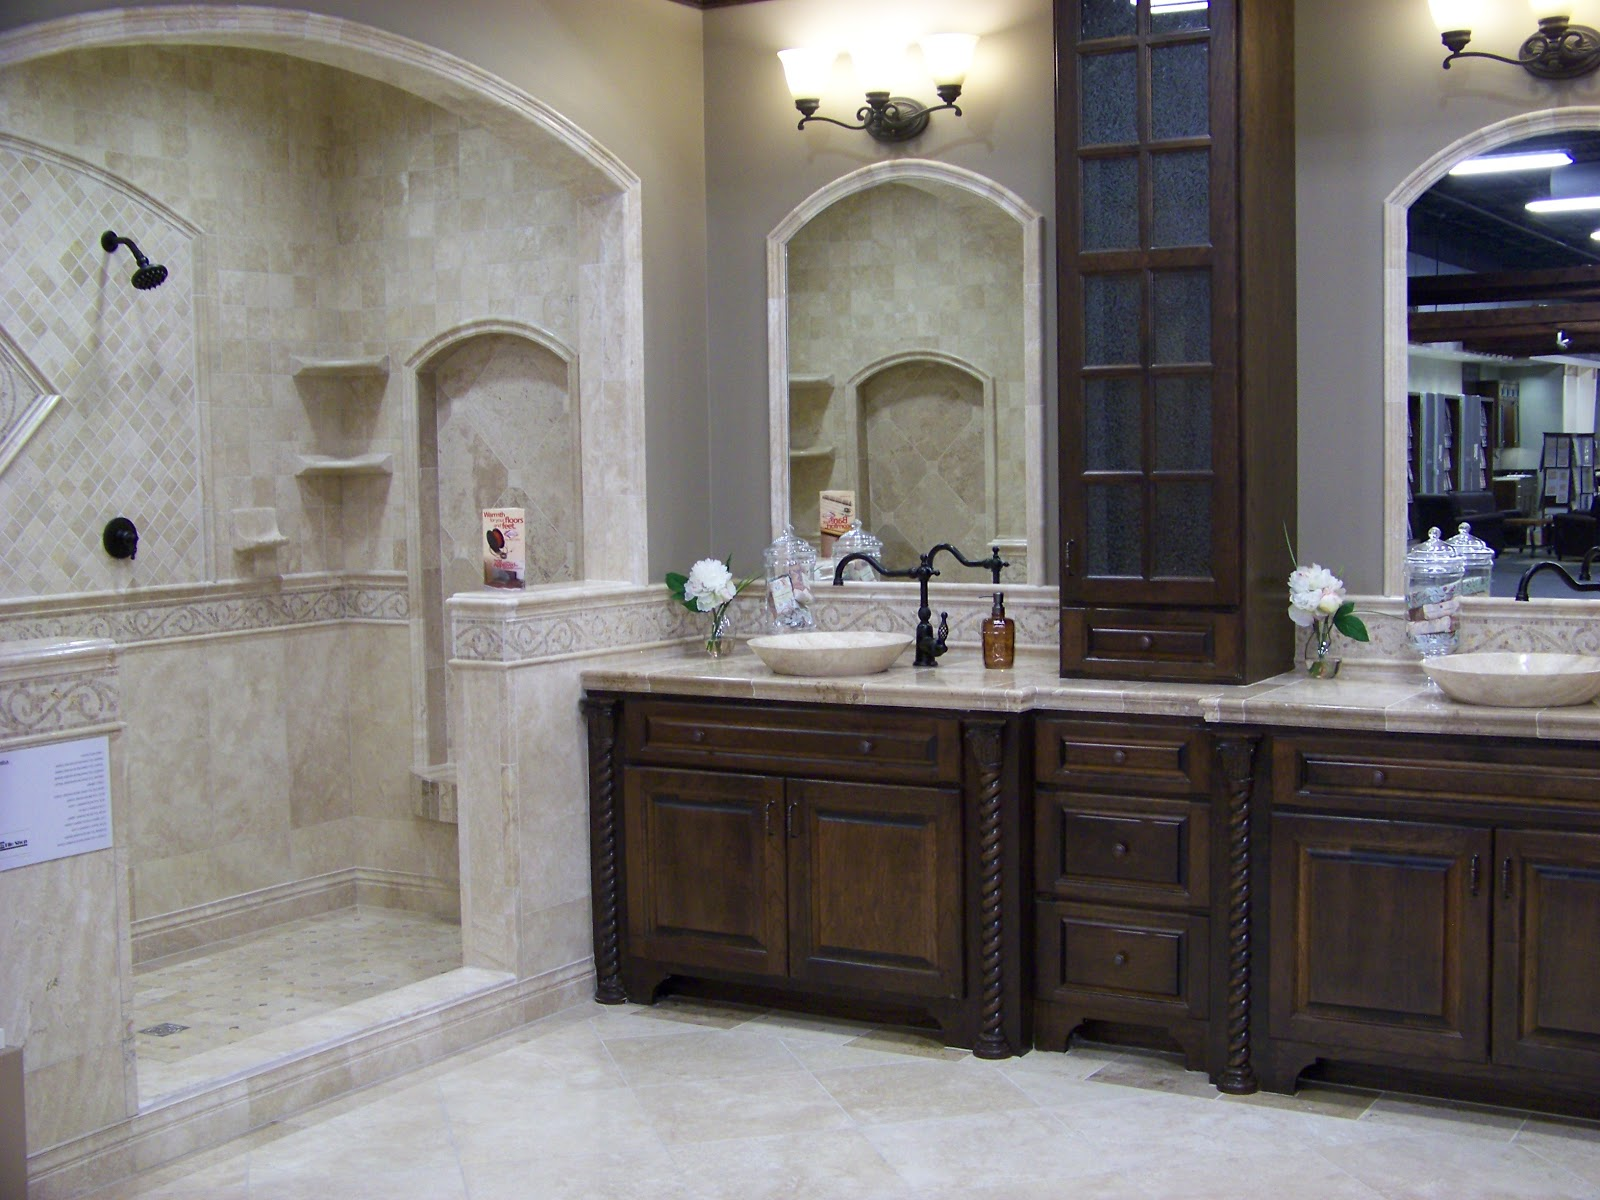 Home decor budgetista bathroom inspiration the tile shop for Bathroom tile designs ideas